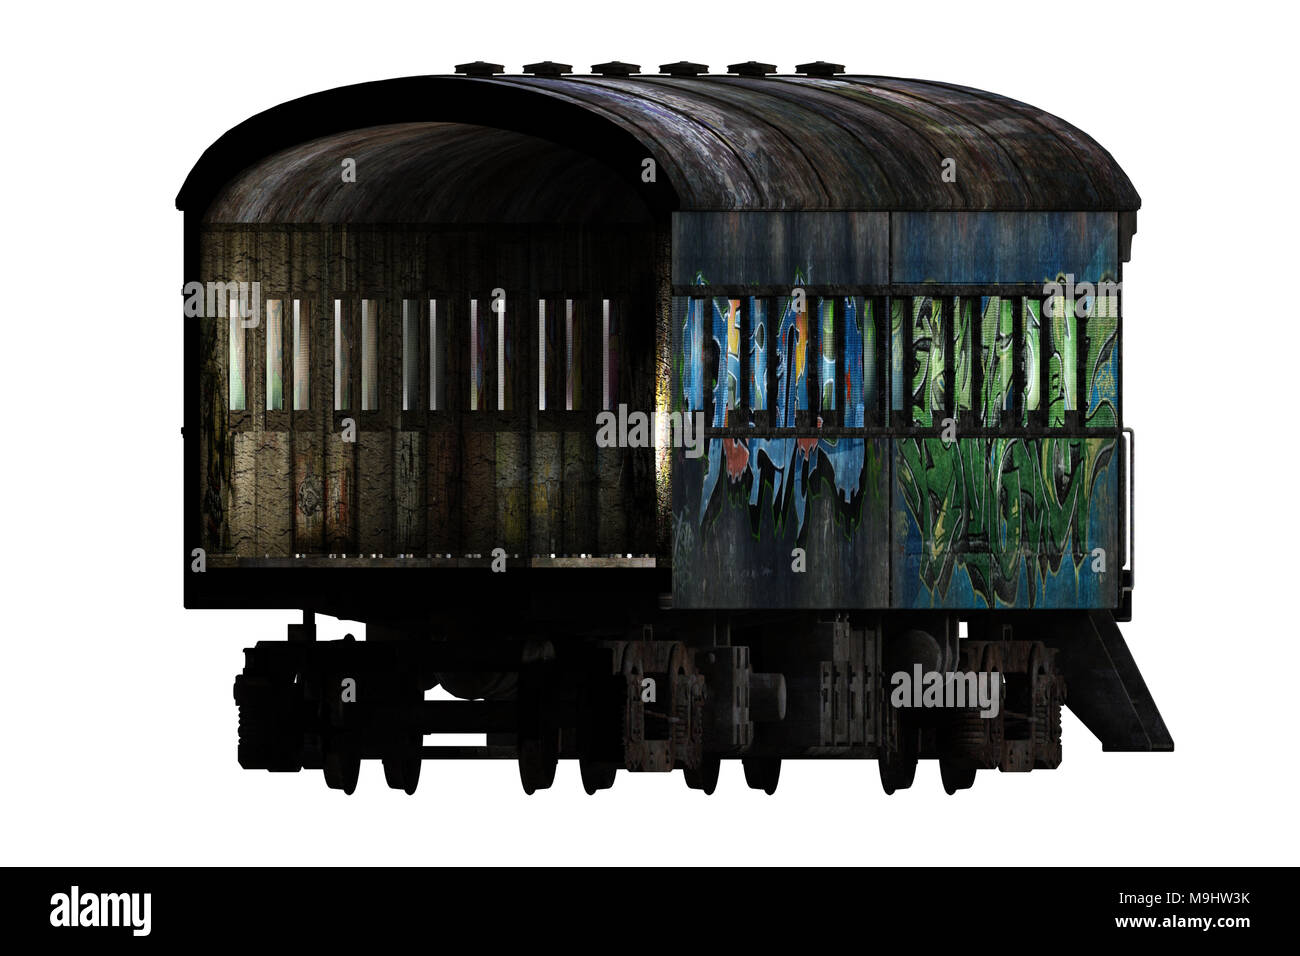 Old rundown train carriage isolated on white, 3d render - Stock Image